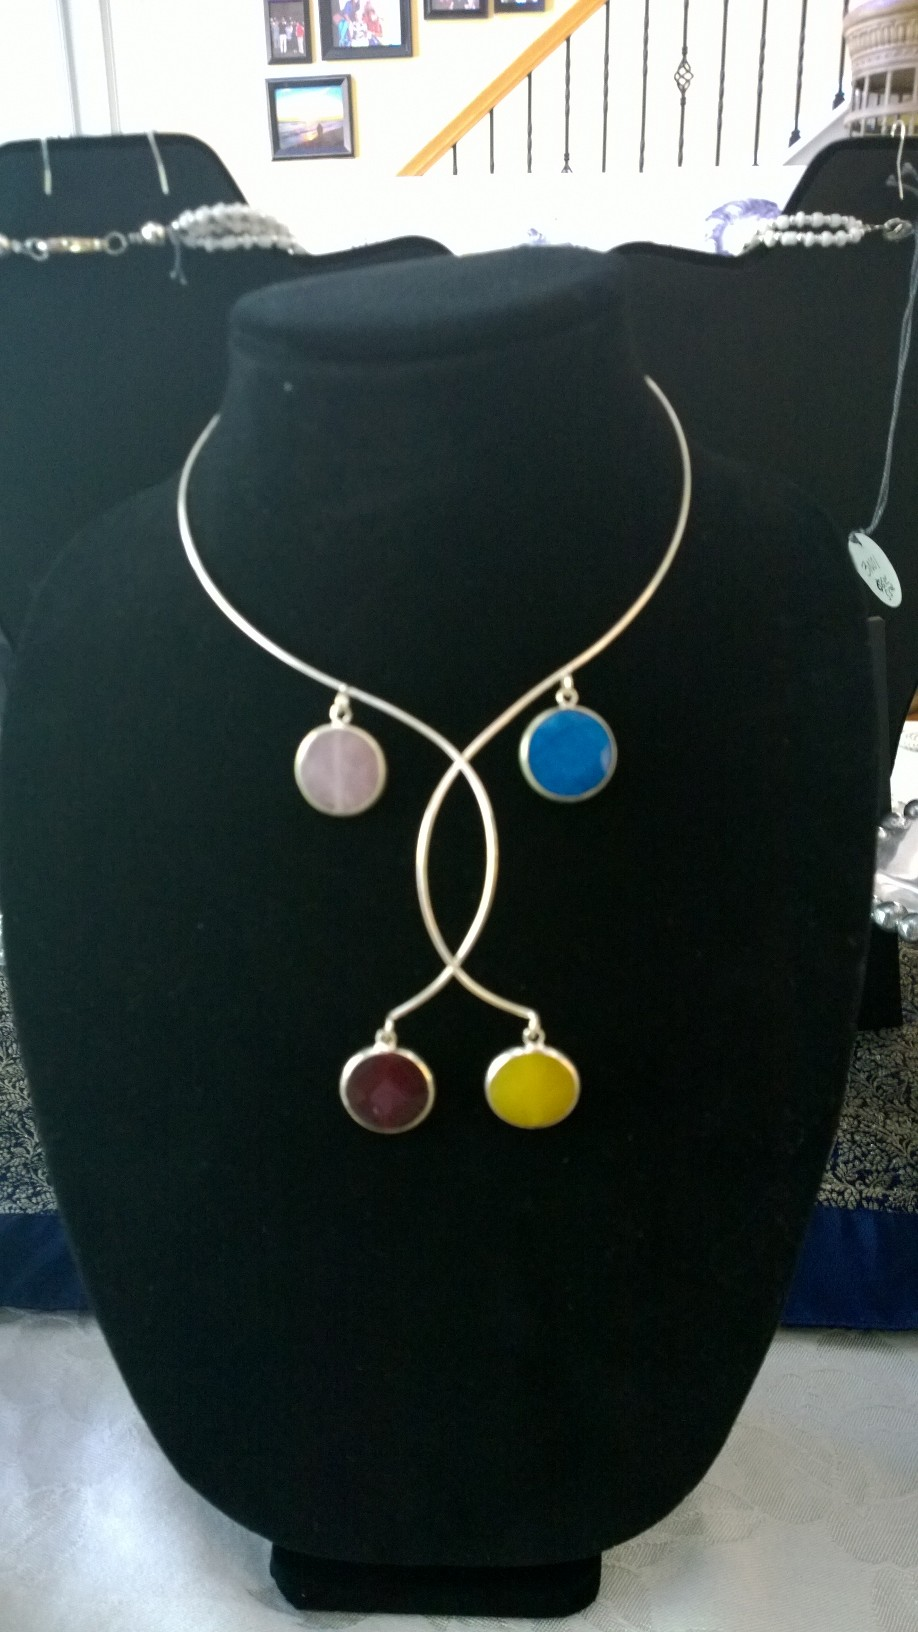 Wired Four Seasons Necklace 1N15